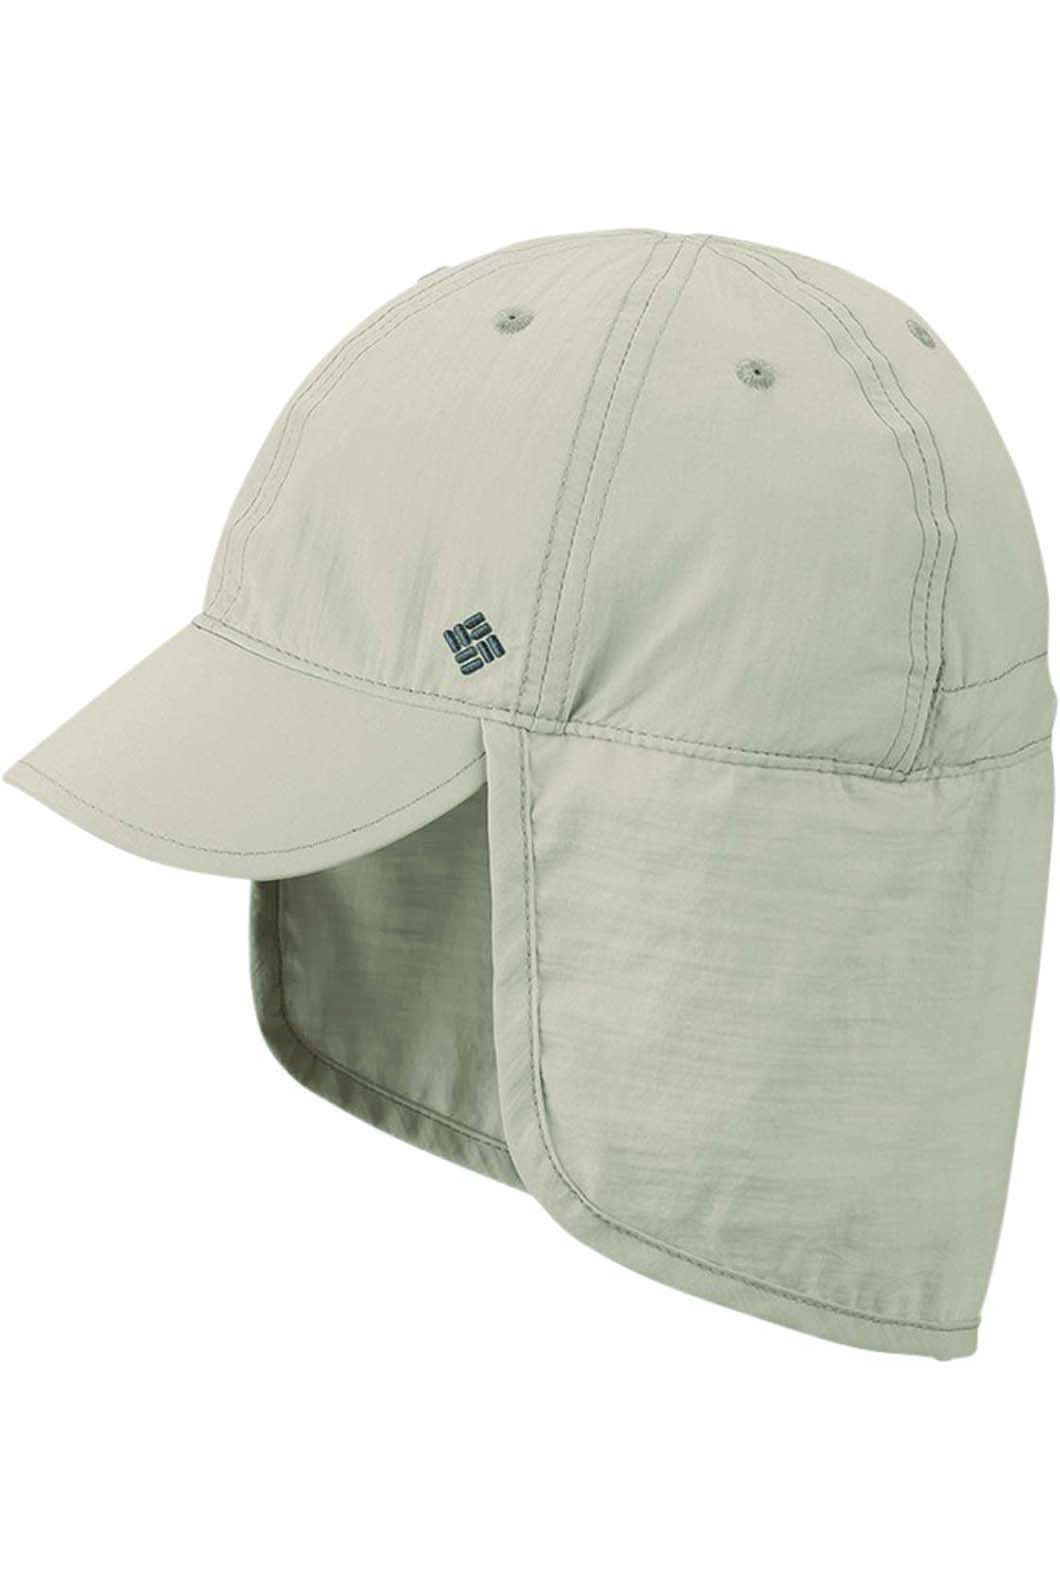 Columbia Kids' Junior Cachalot Hat Fossil One Size Fits Most, LOLLIPOP, hi-res